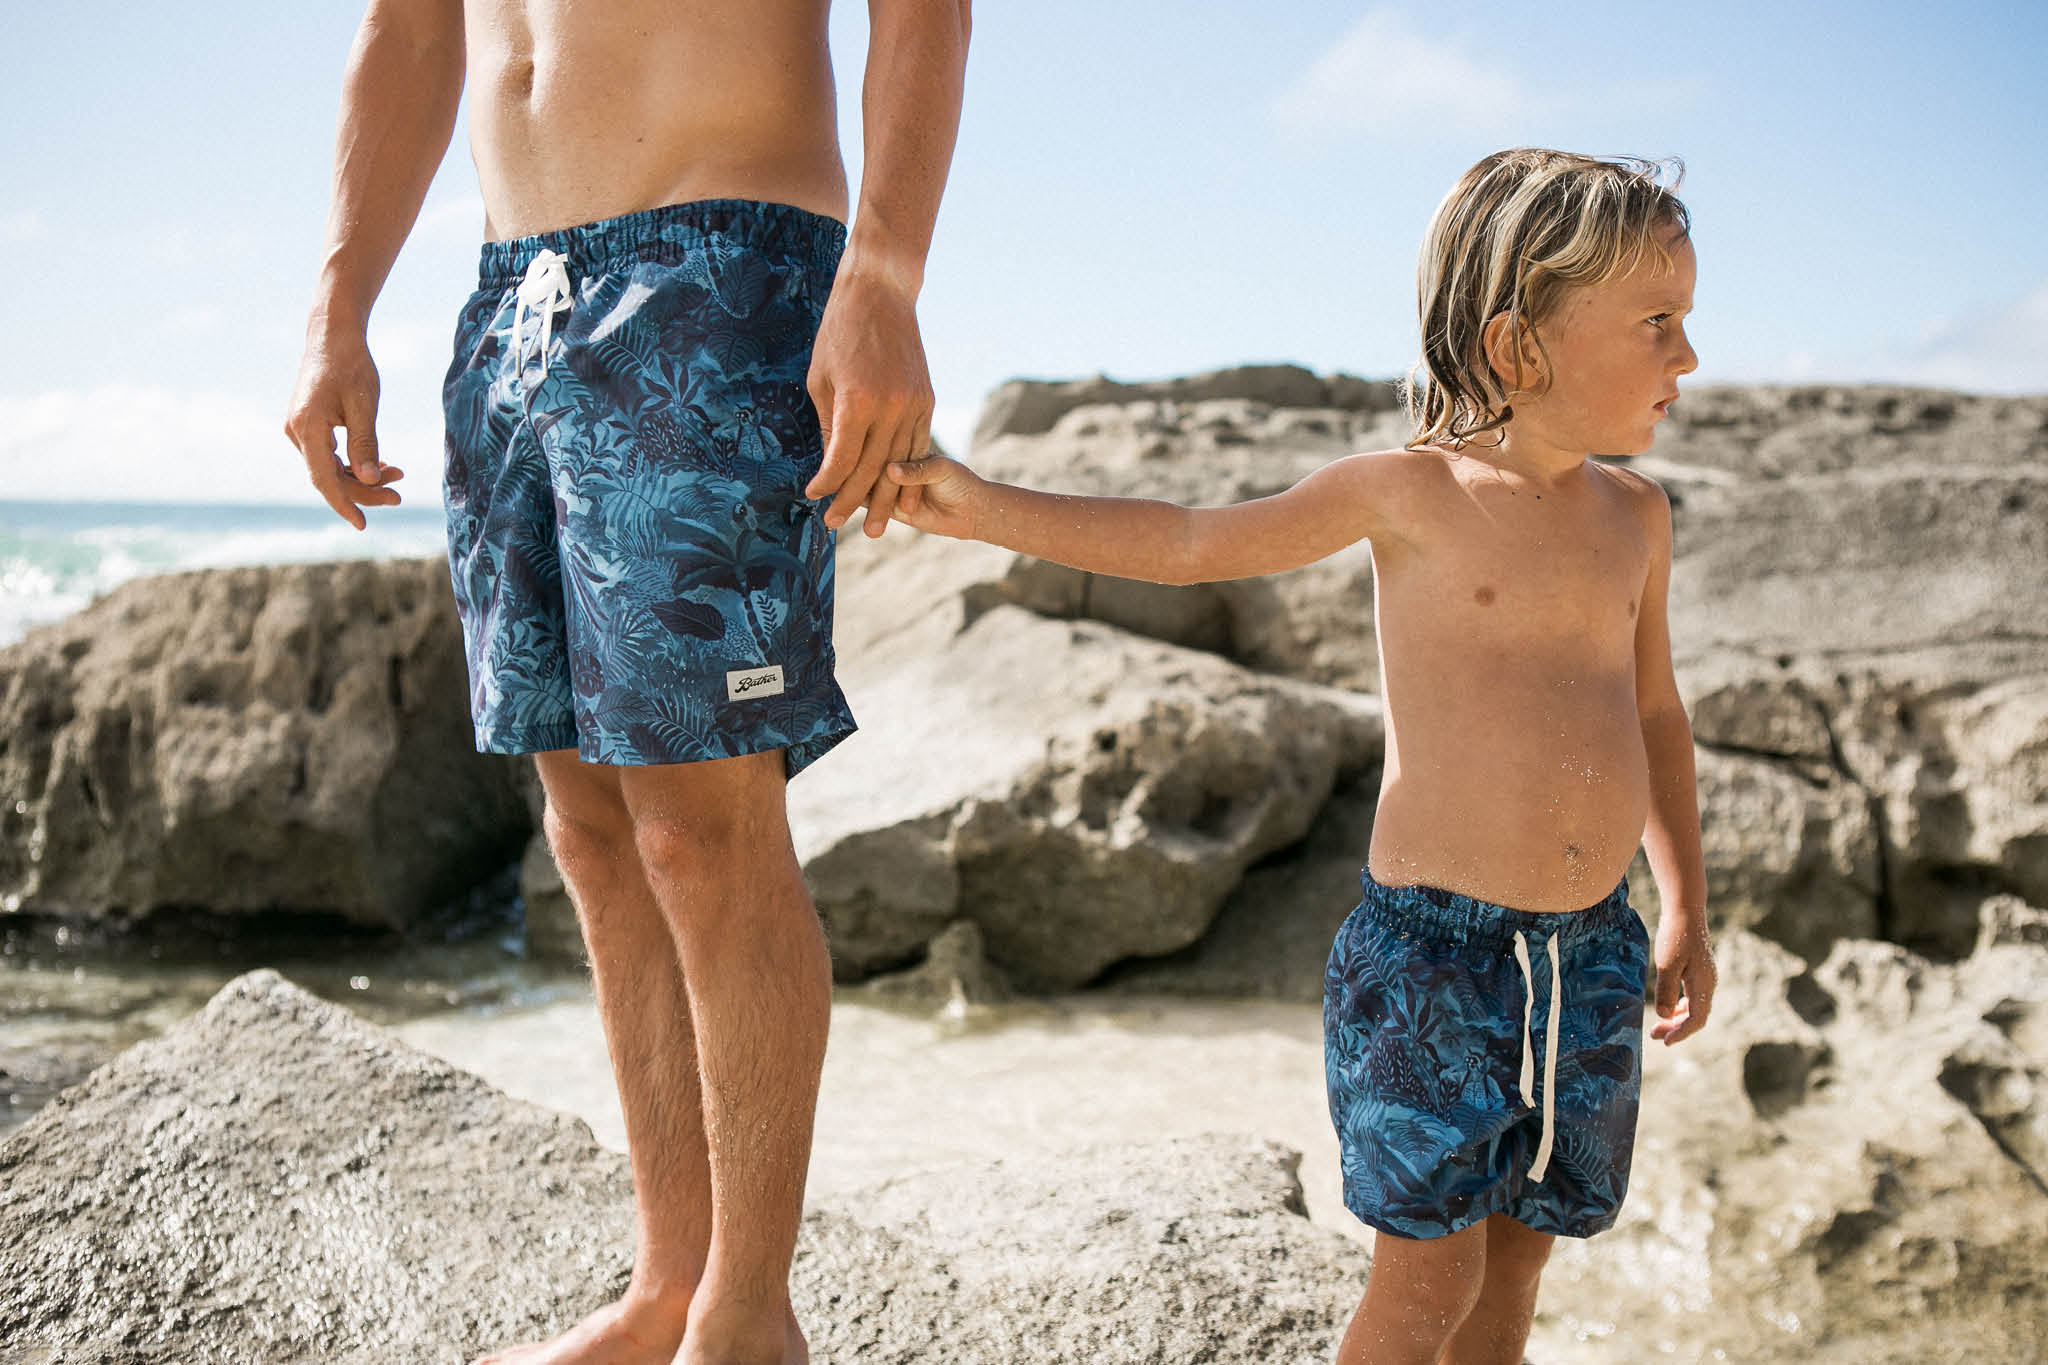 Matching Bather swim trunks for kids and adults